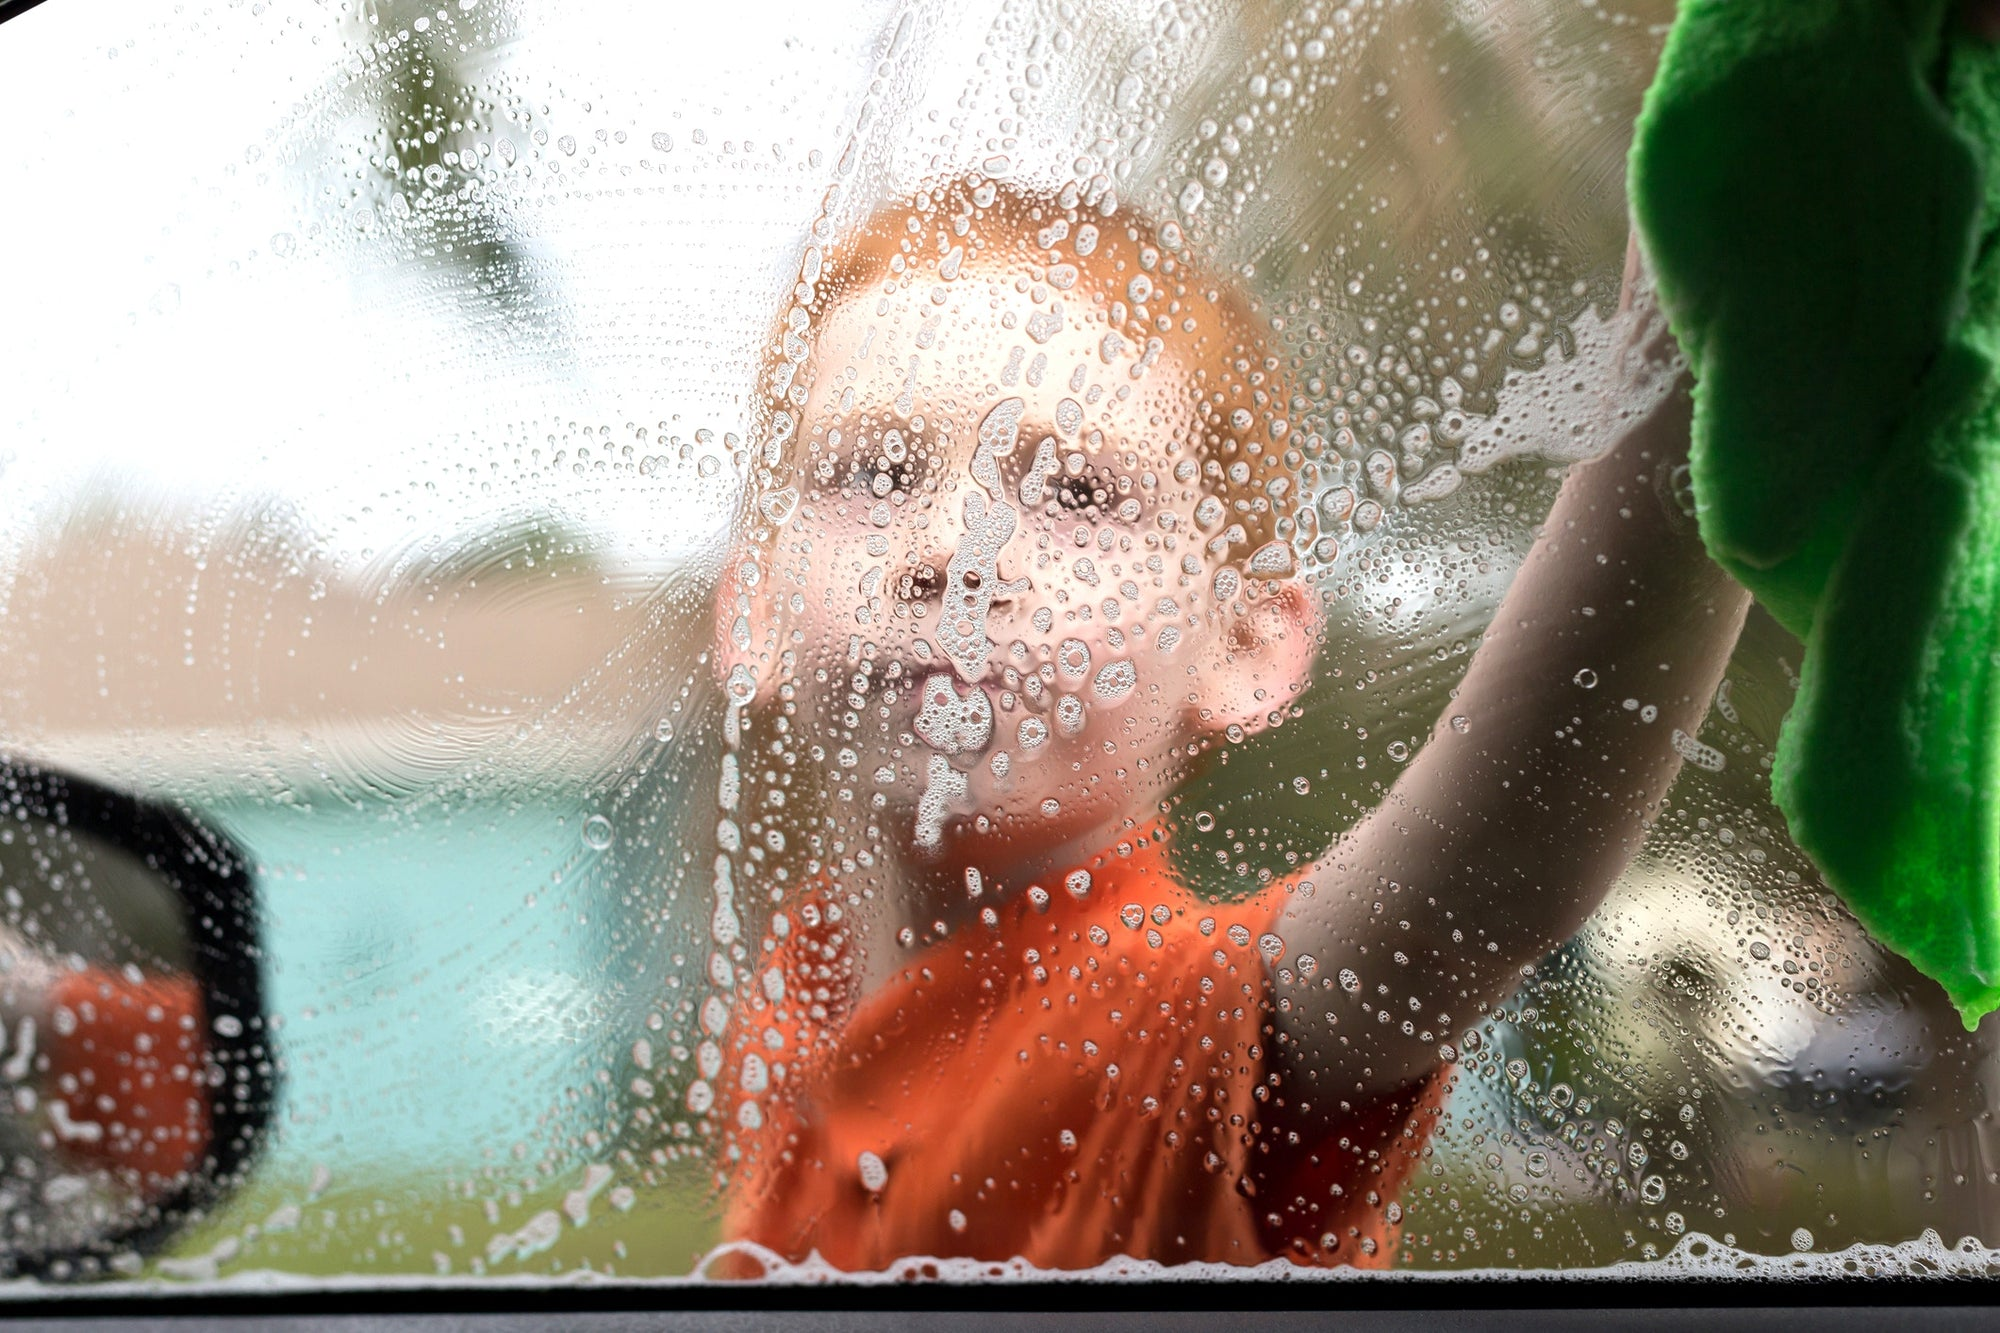 A child washing a car's window